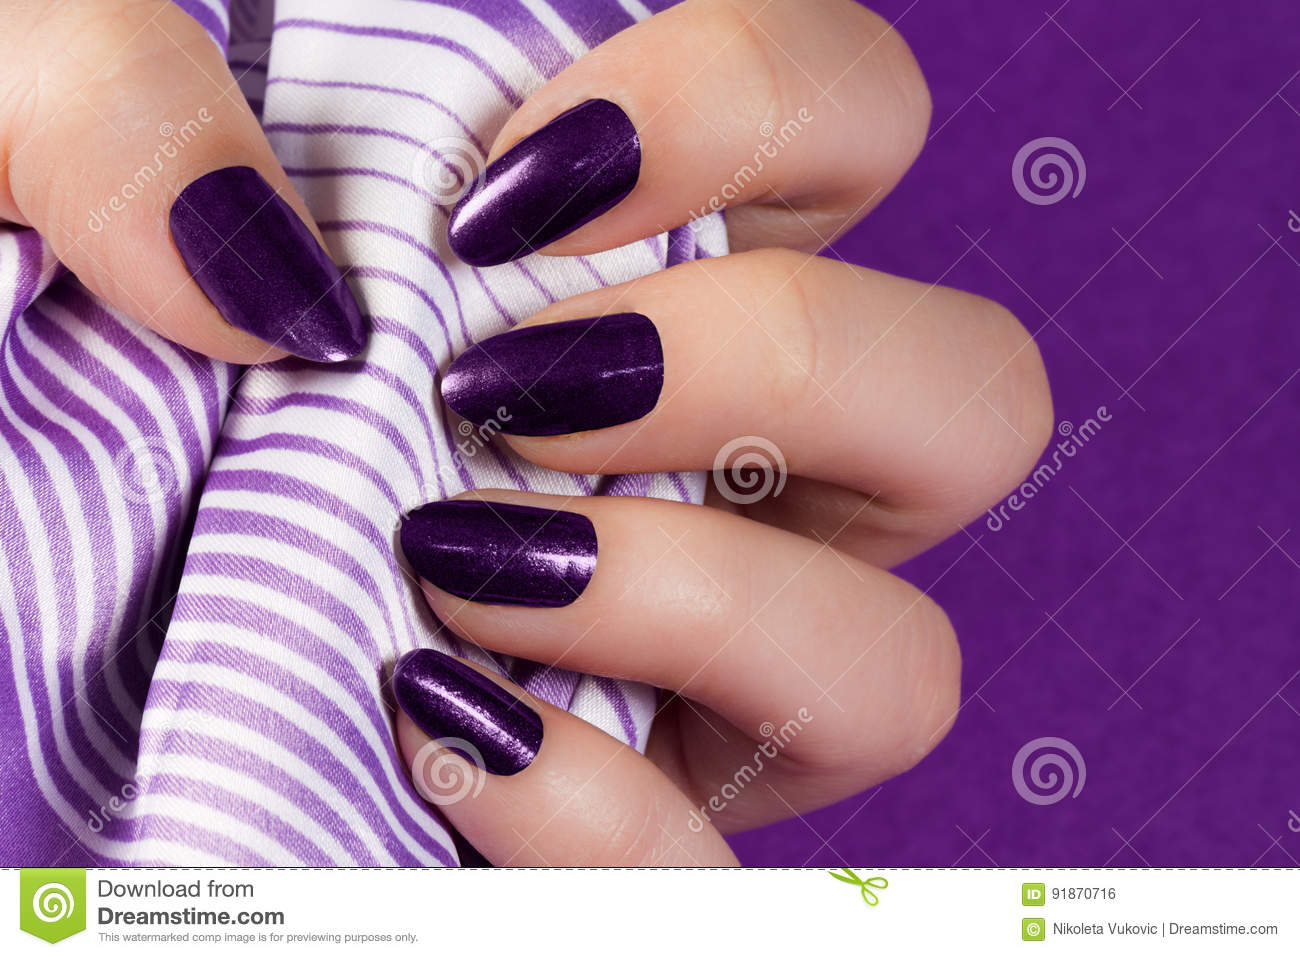 Dark purple nails stock photo. Image of nails, color - 91870716